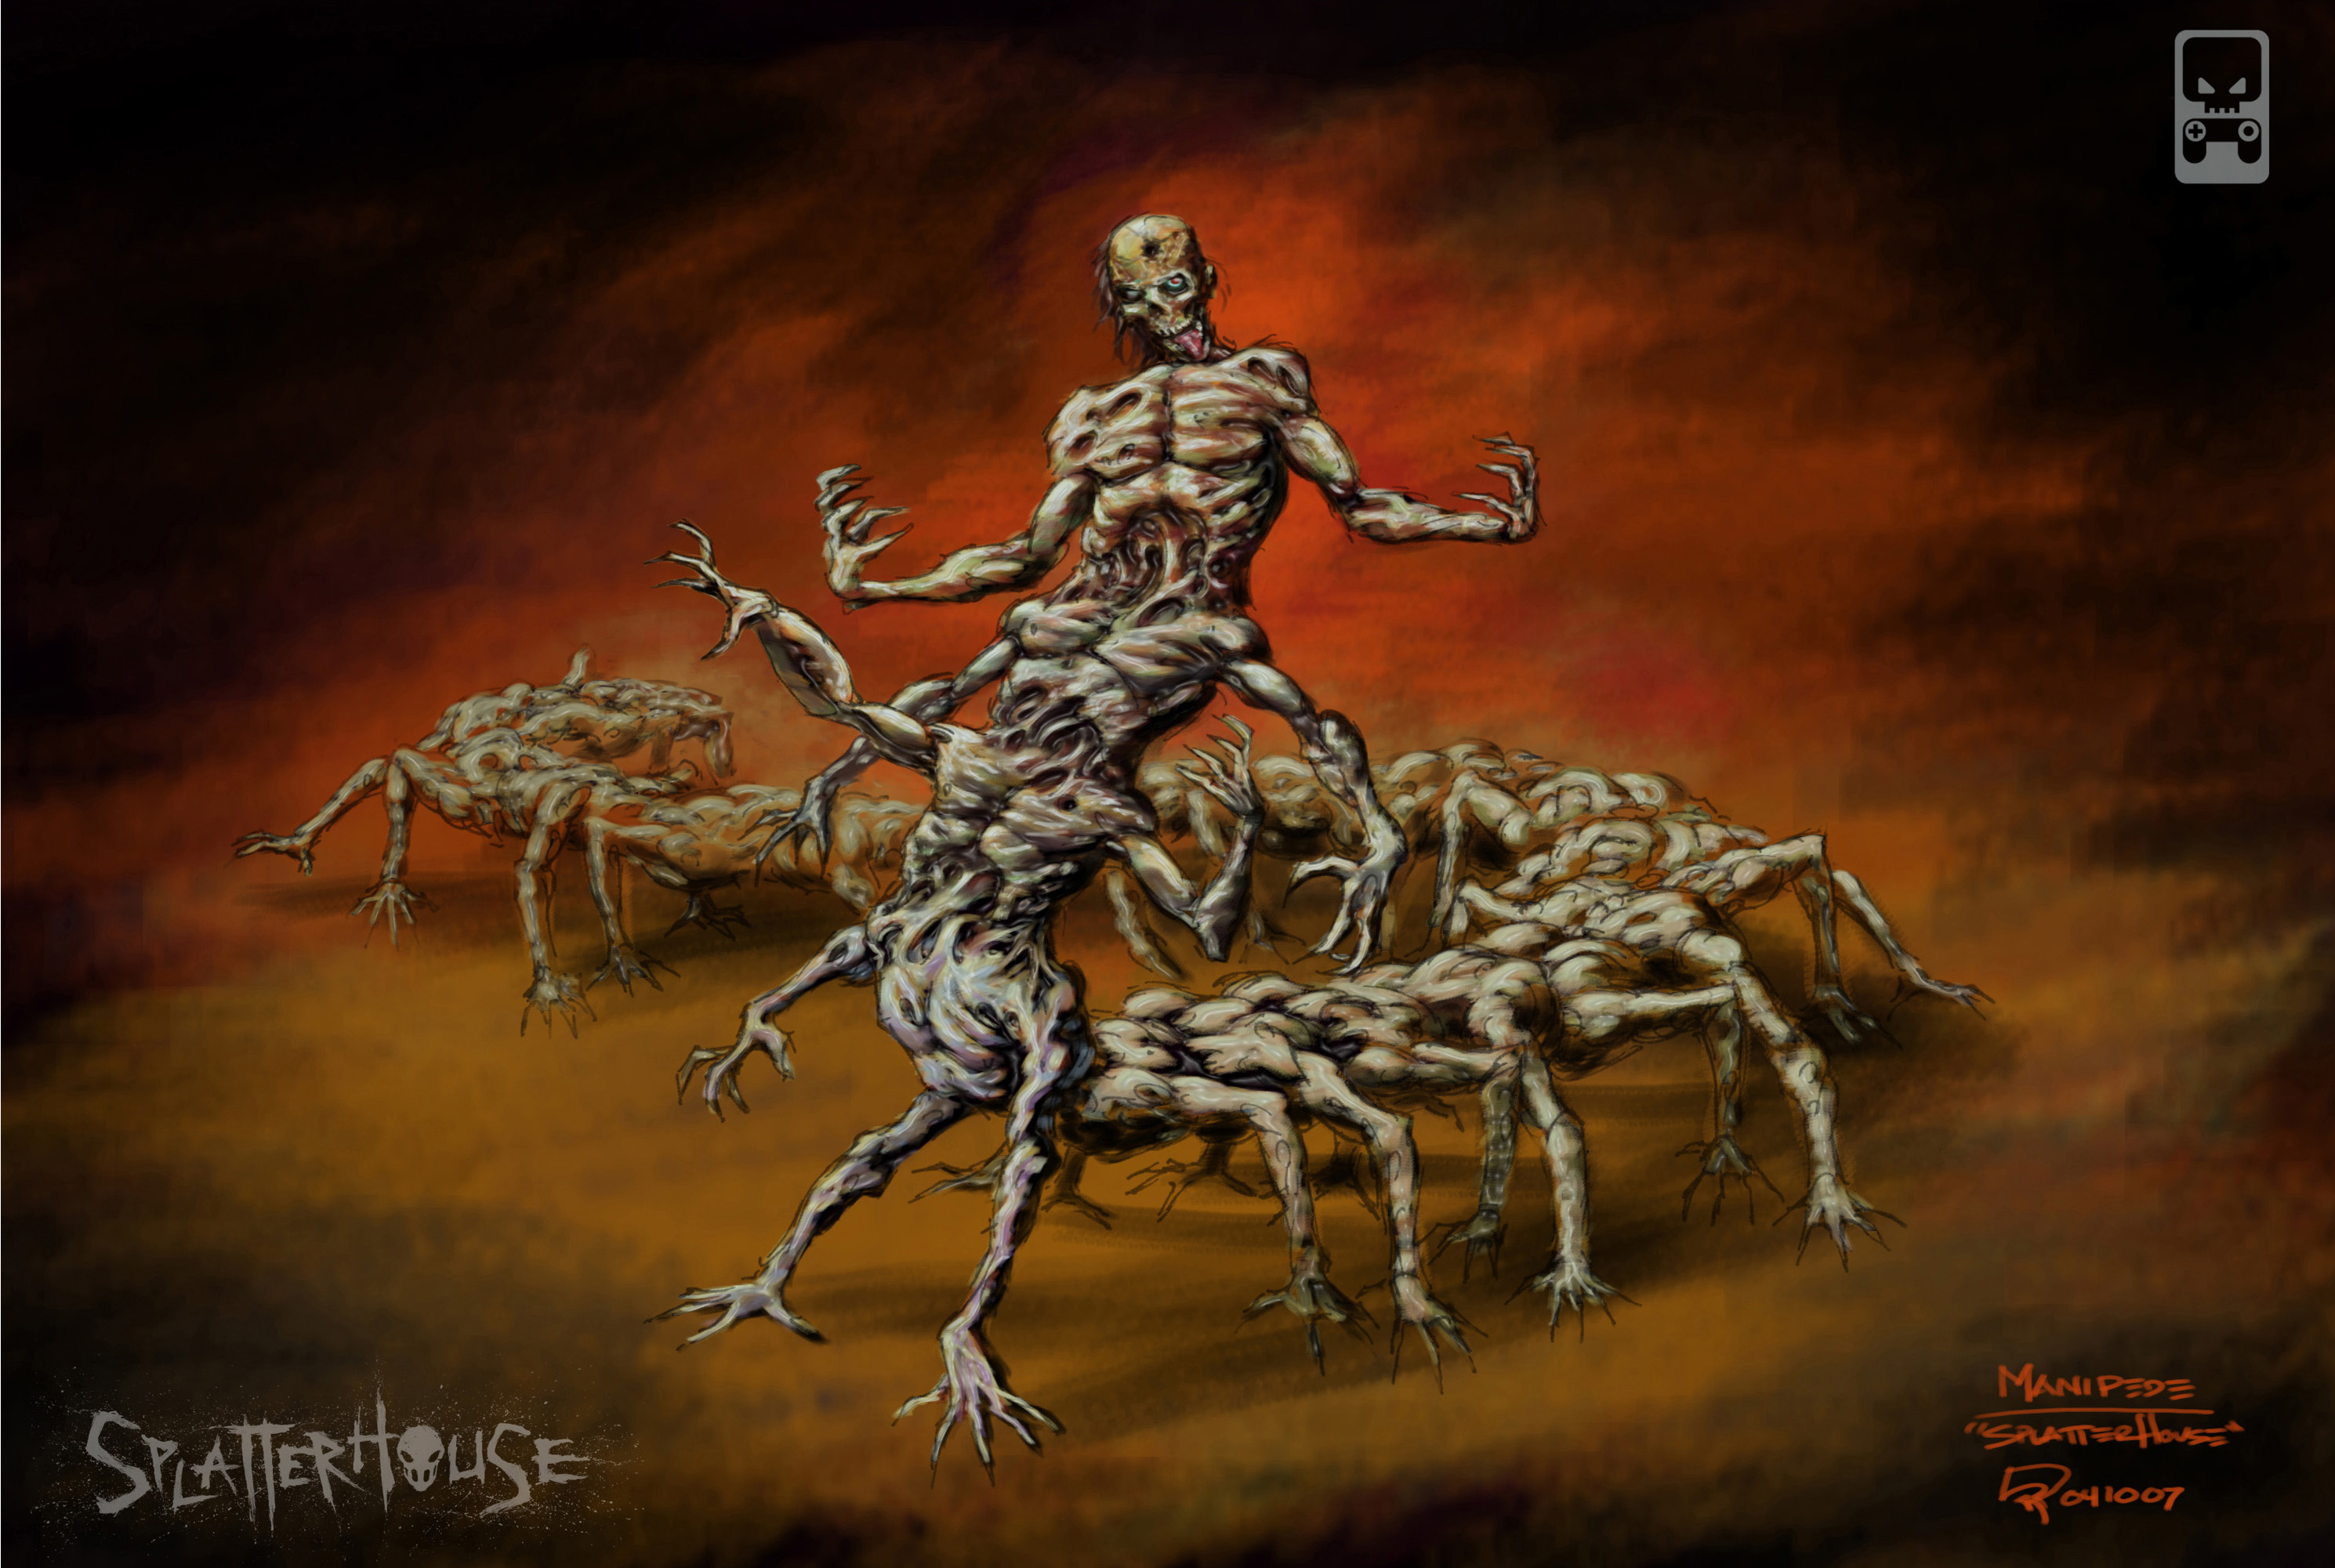 West mansion the splatterhouse homepage artwork manipede pooptronica